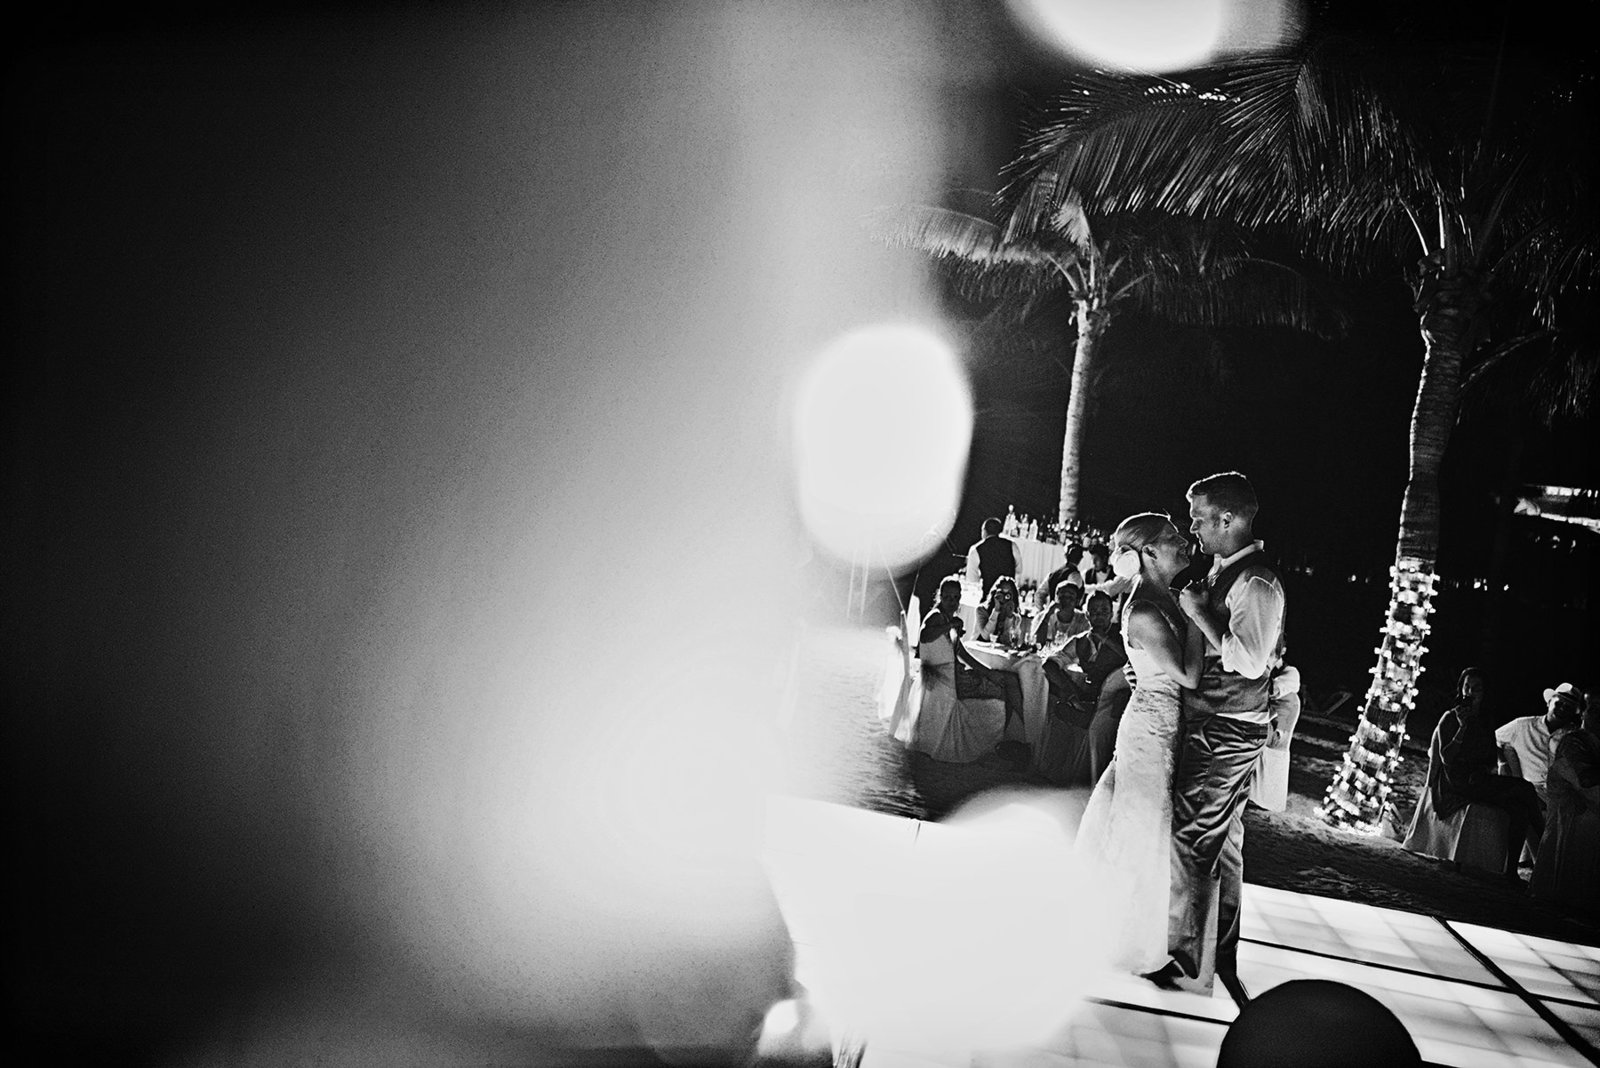 barcelo maya beach resort wedding destination wedding photographer bryan newfield photography 52